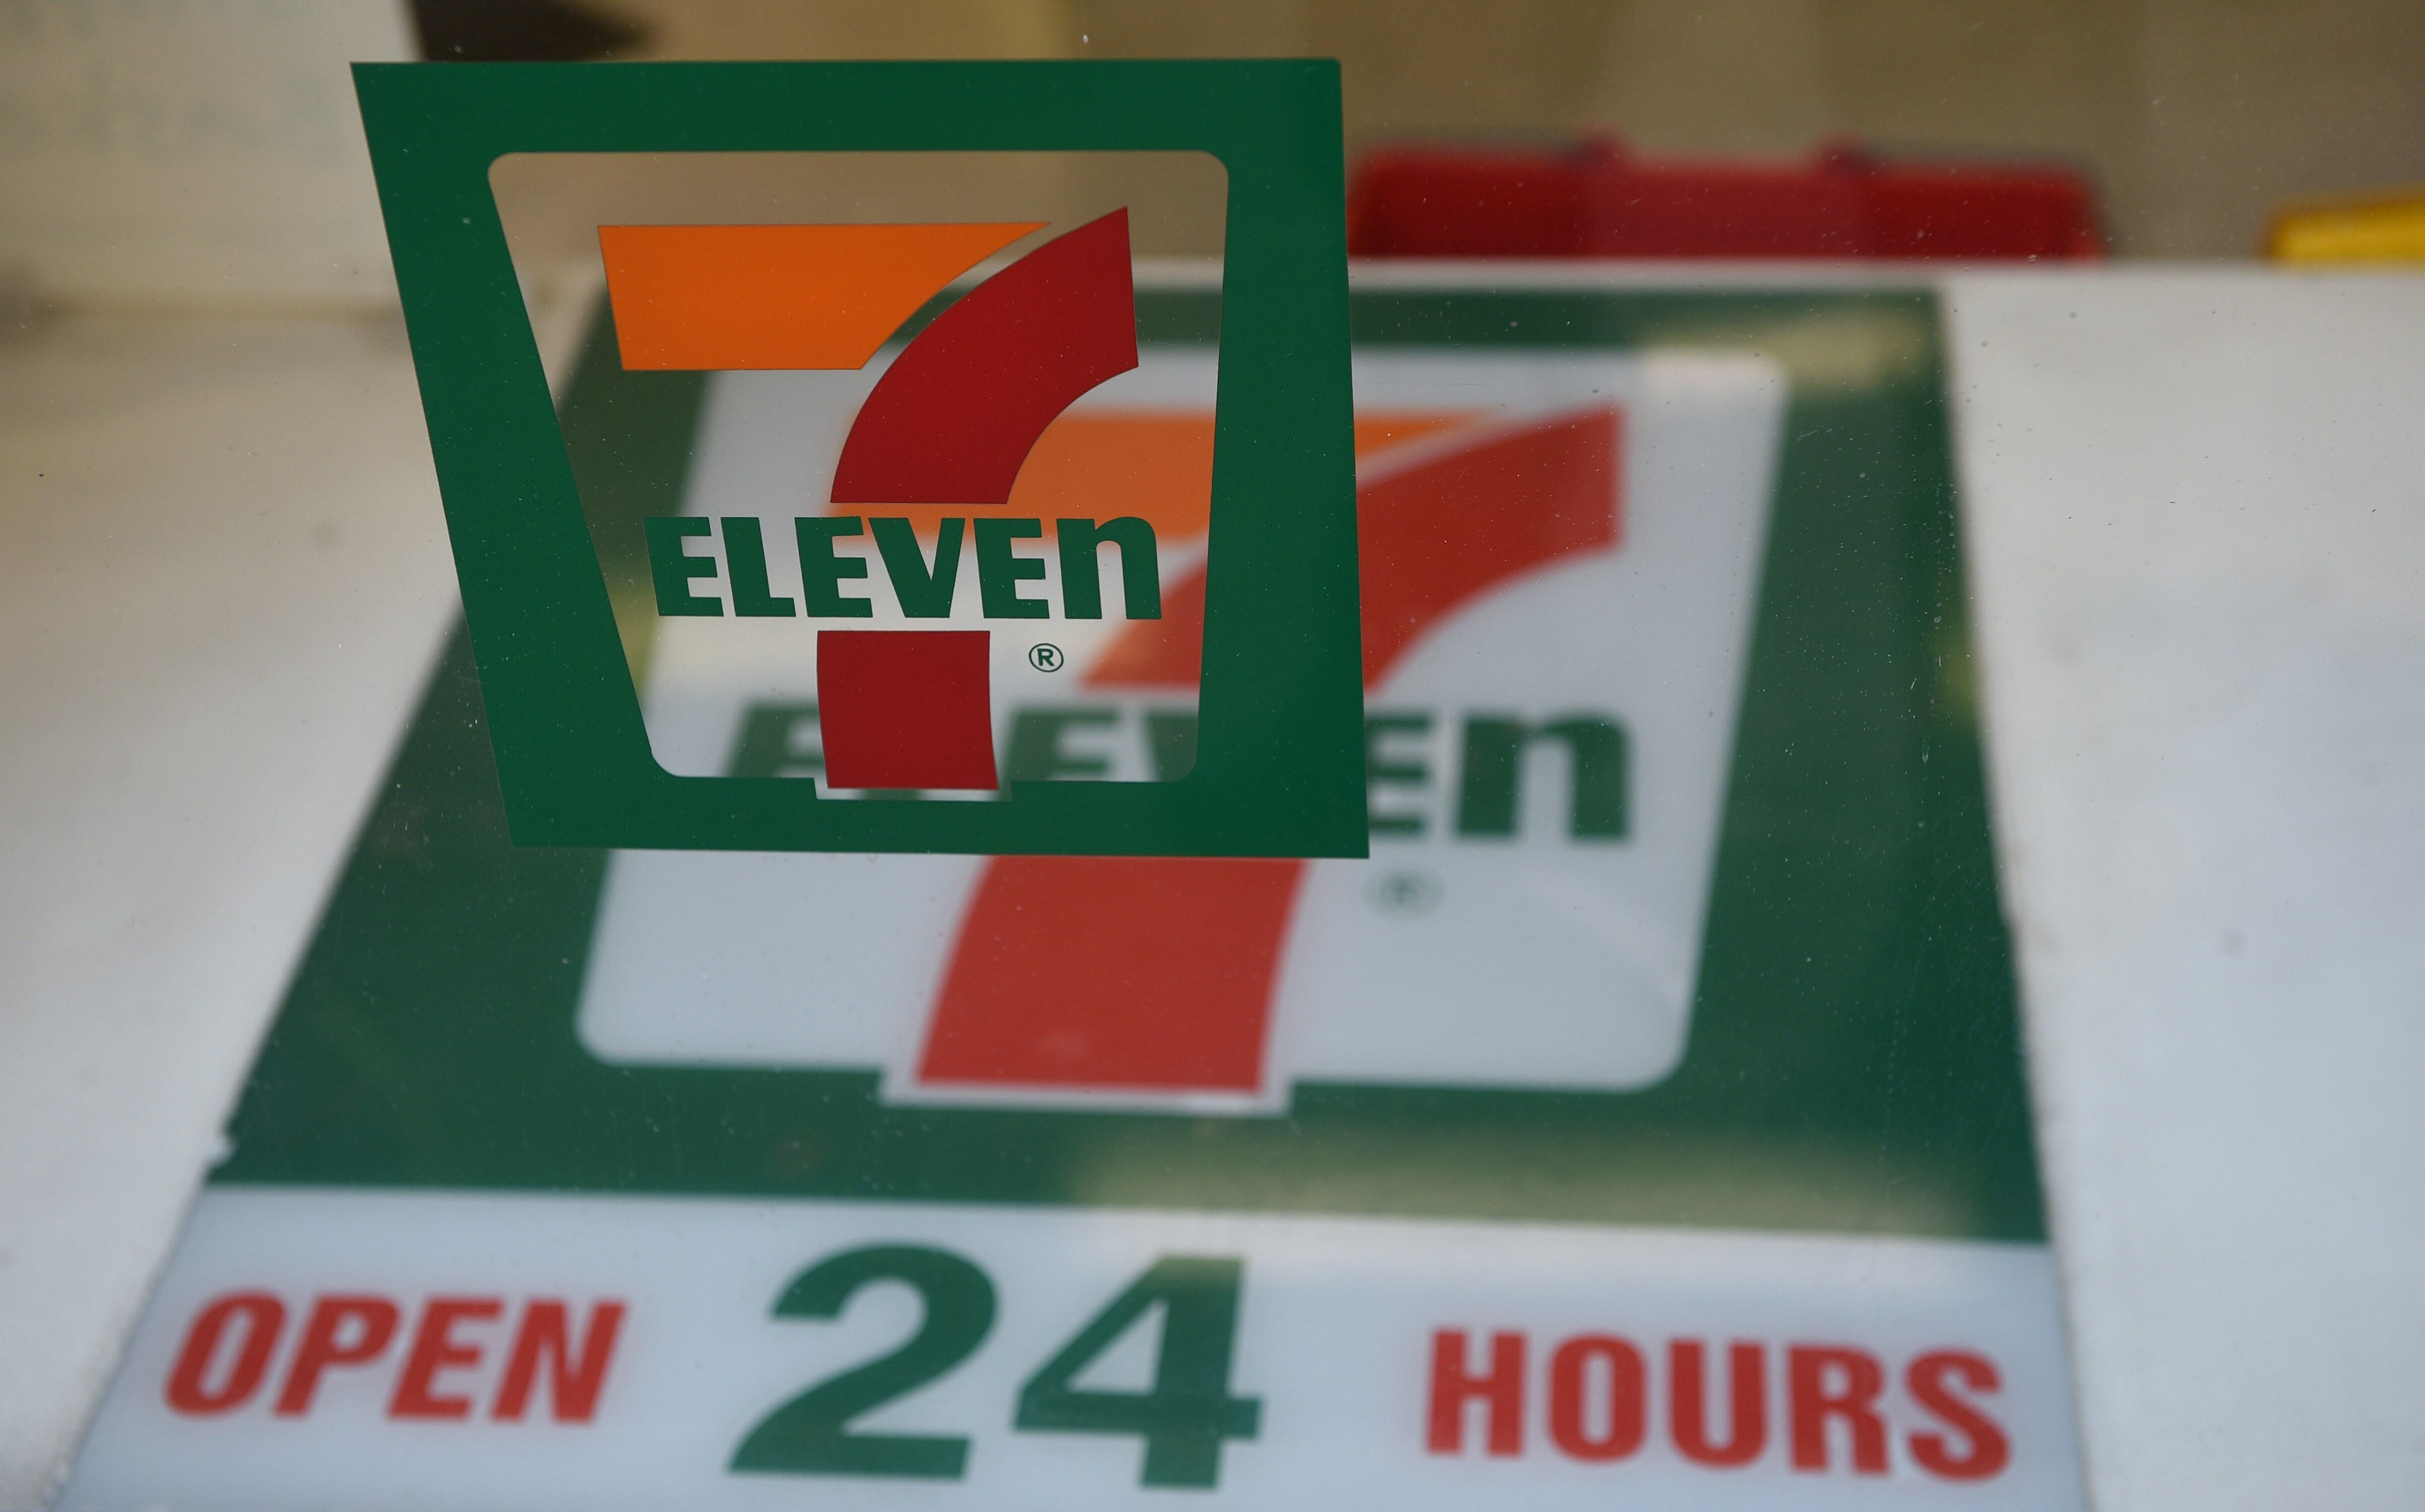 A sign for a 7-Eleven convenience store is seen at a store in Sydney on September 1, 2015. The convenience store giant will establish an independent panel to review damaging allegations that its franchisees doctored payrolls and systematically underpay wo